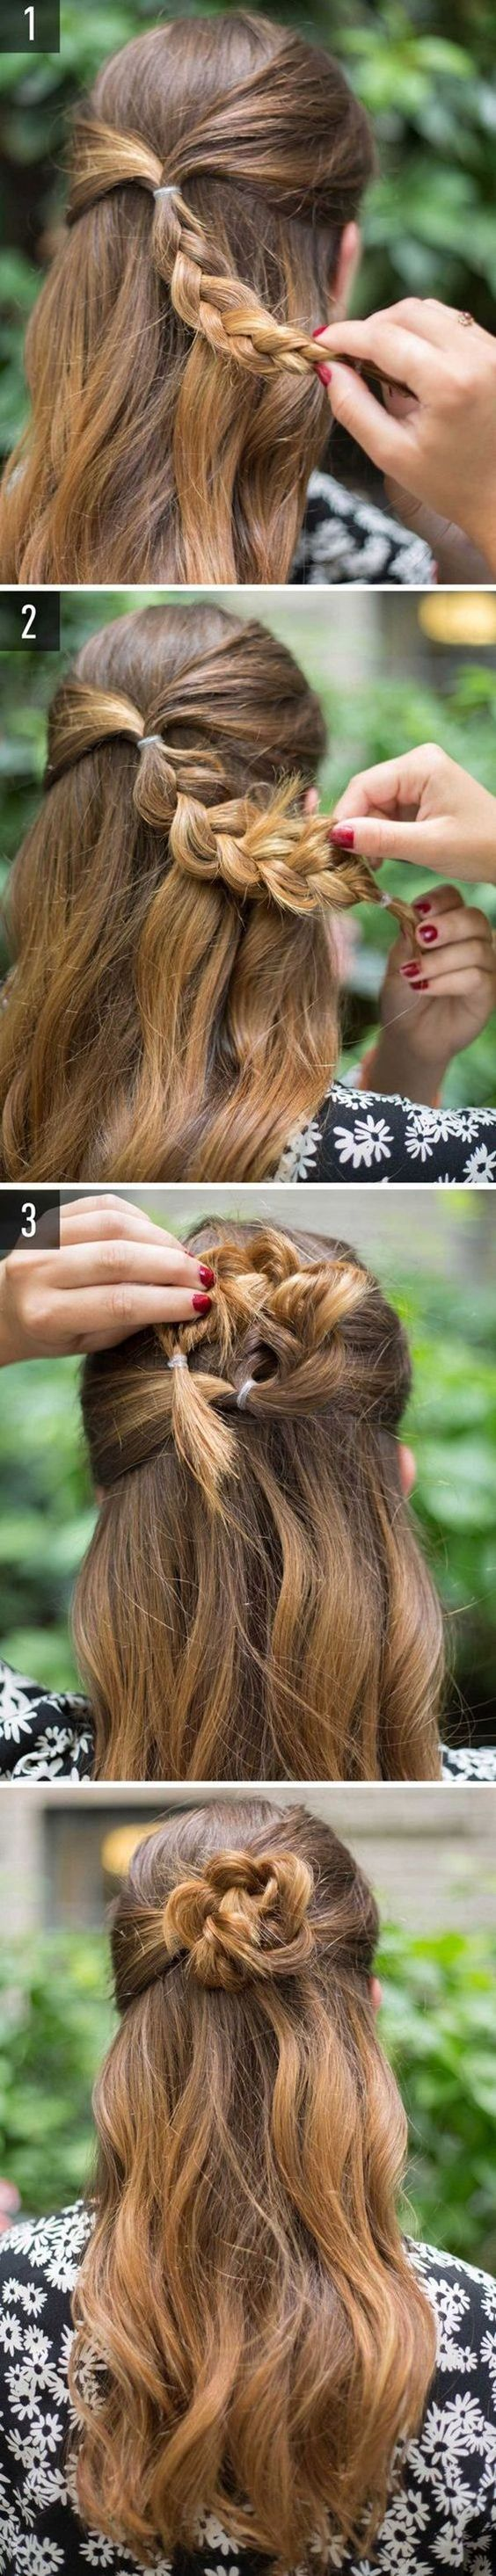 40 Easy Hairstyles for Schools to Try in 2016 – Isabella Ryan